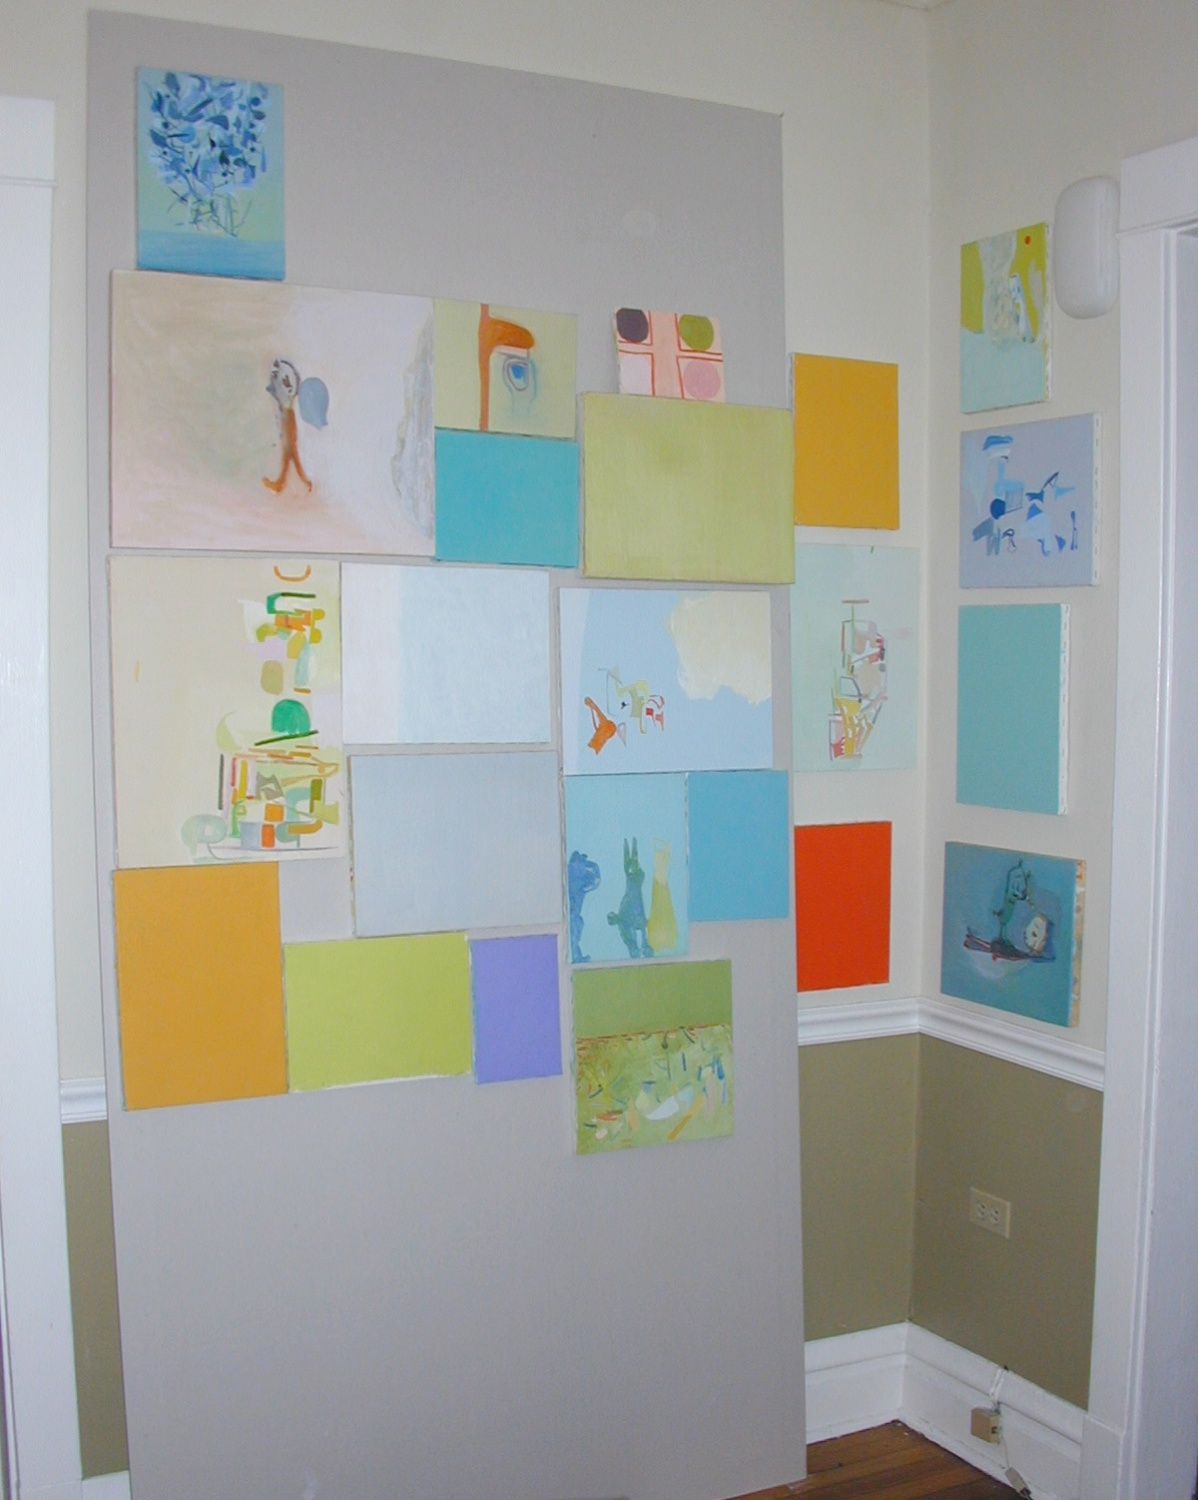 Amy Sillman 2003 Shane Campbell Gallery, Oak Park Installation View